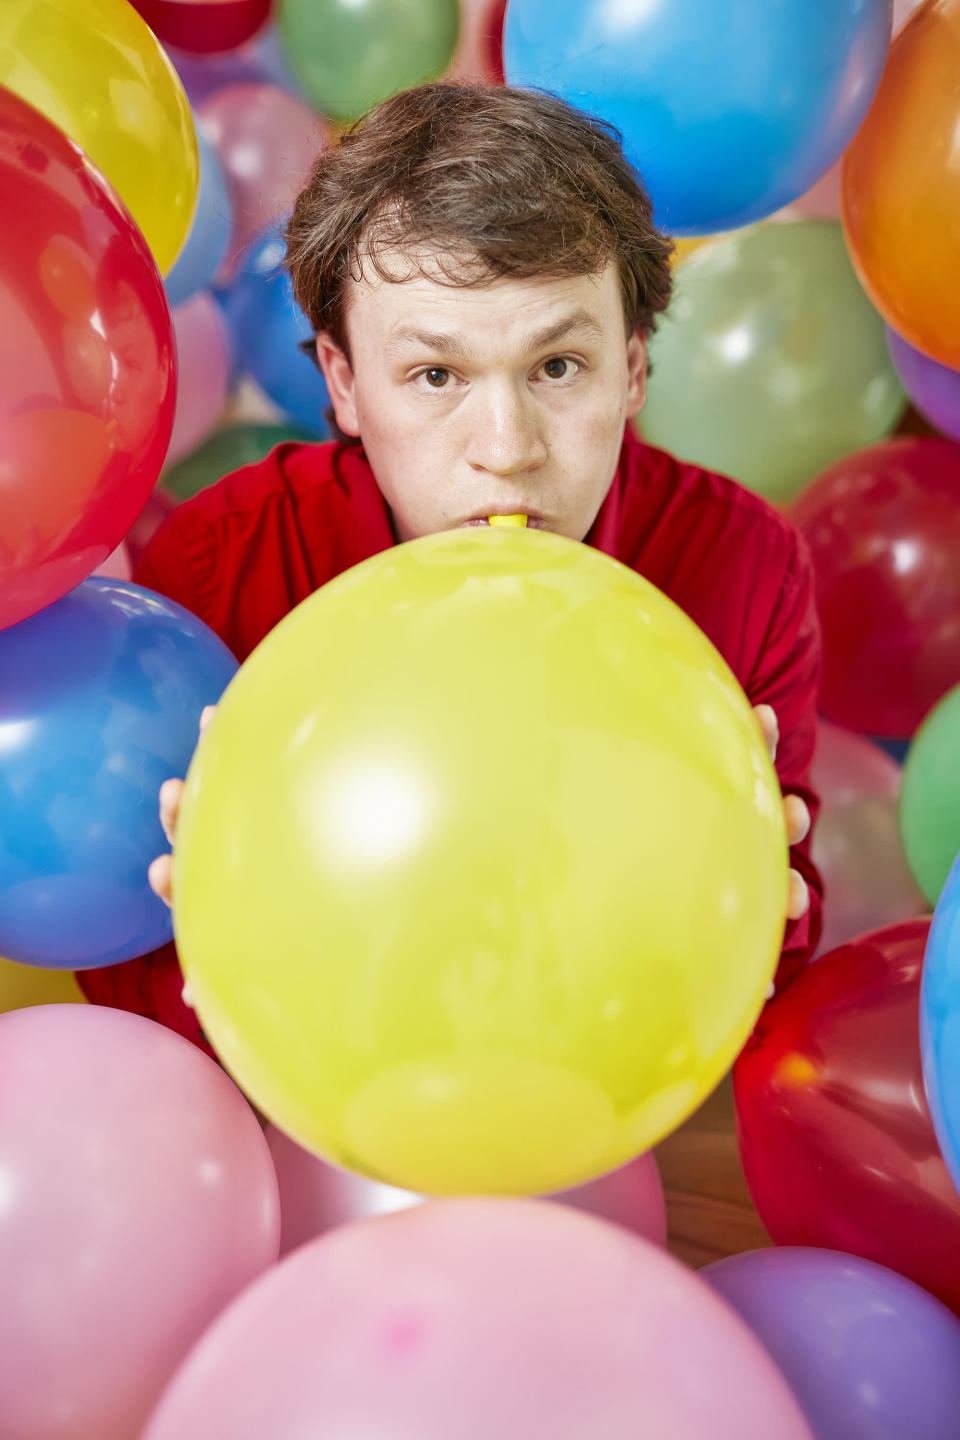 <p>With an incredible pair of lungs, Hunter Ewen blew up 910 balloons in 60 minutes. (PA) </p>